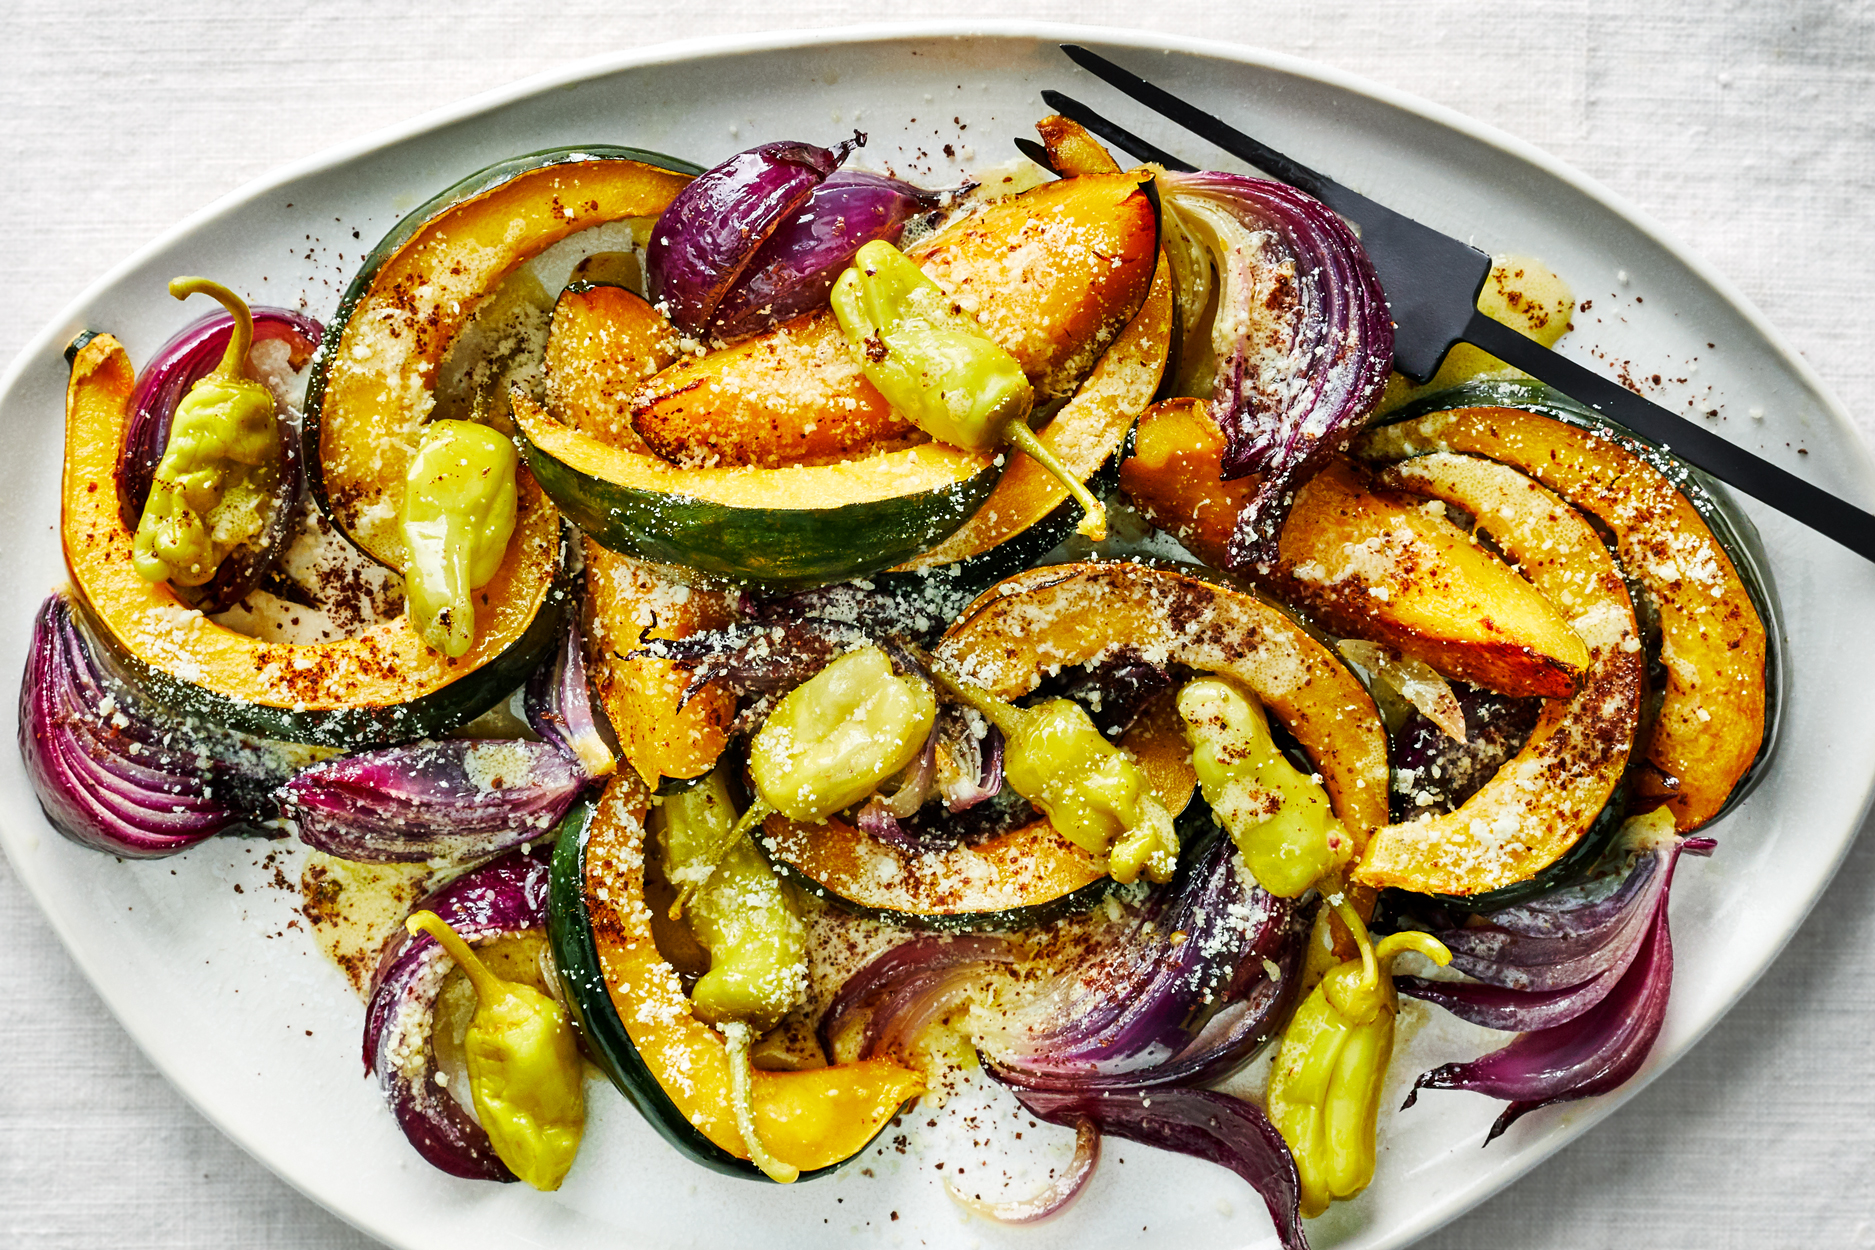 Roasted Squash Salad with Sumac and Italian Dressing Recipe